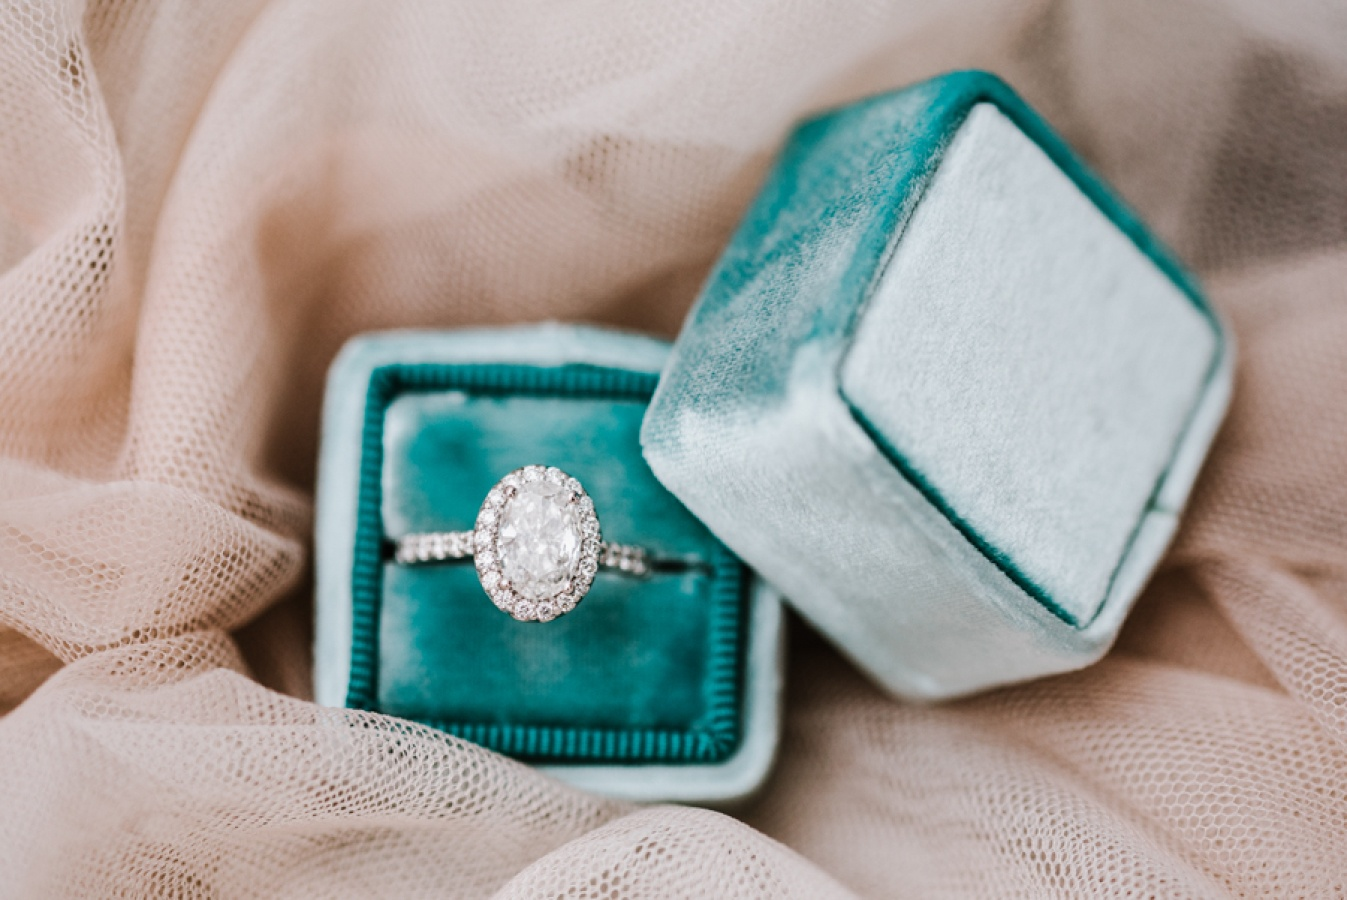 katelyn-matt-proposal-ring-new-3.jpg